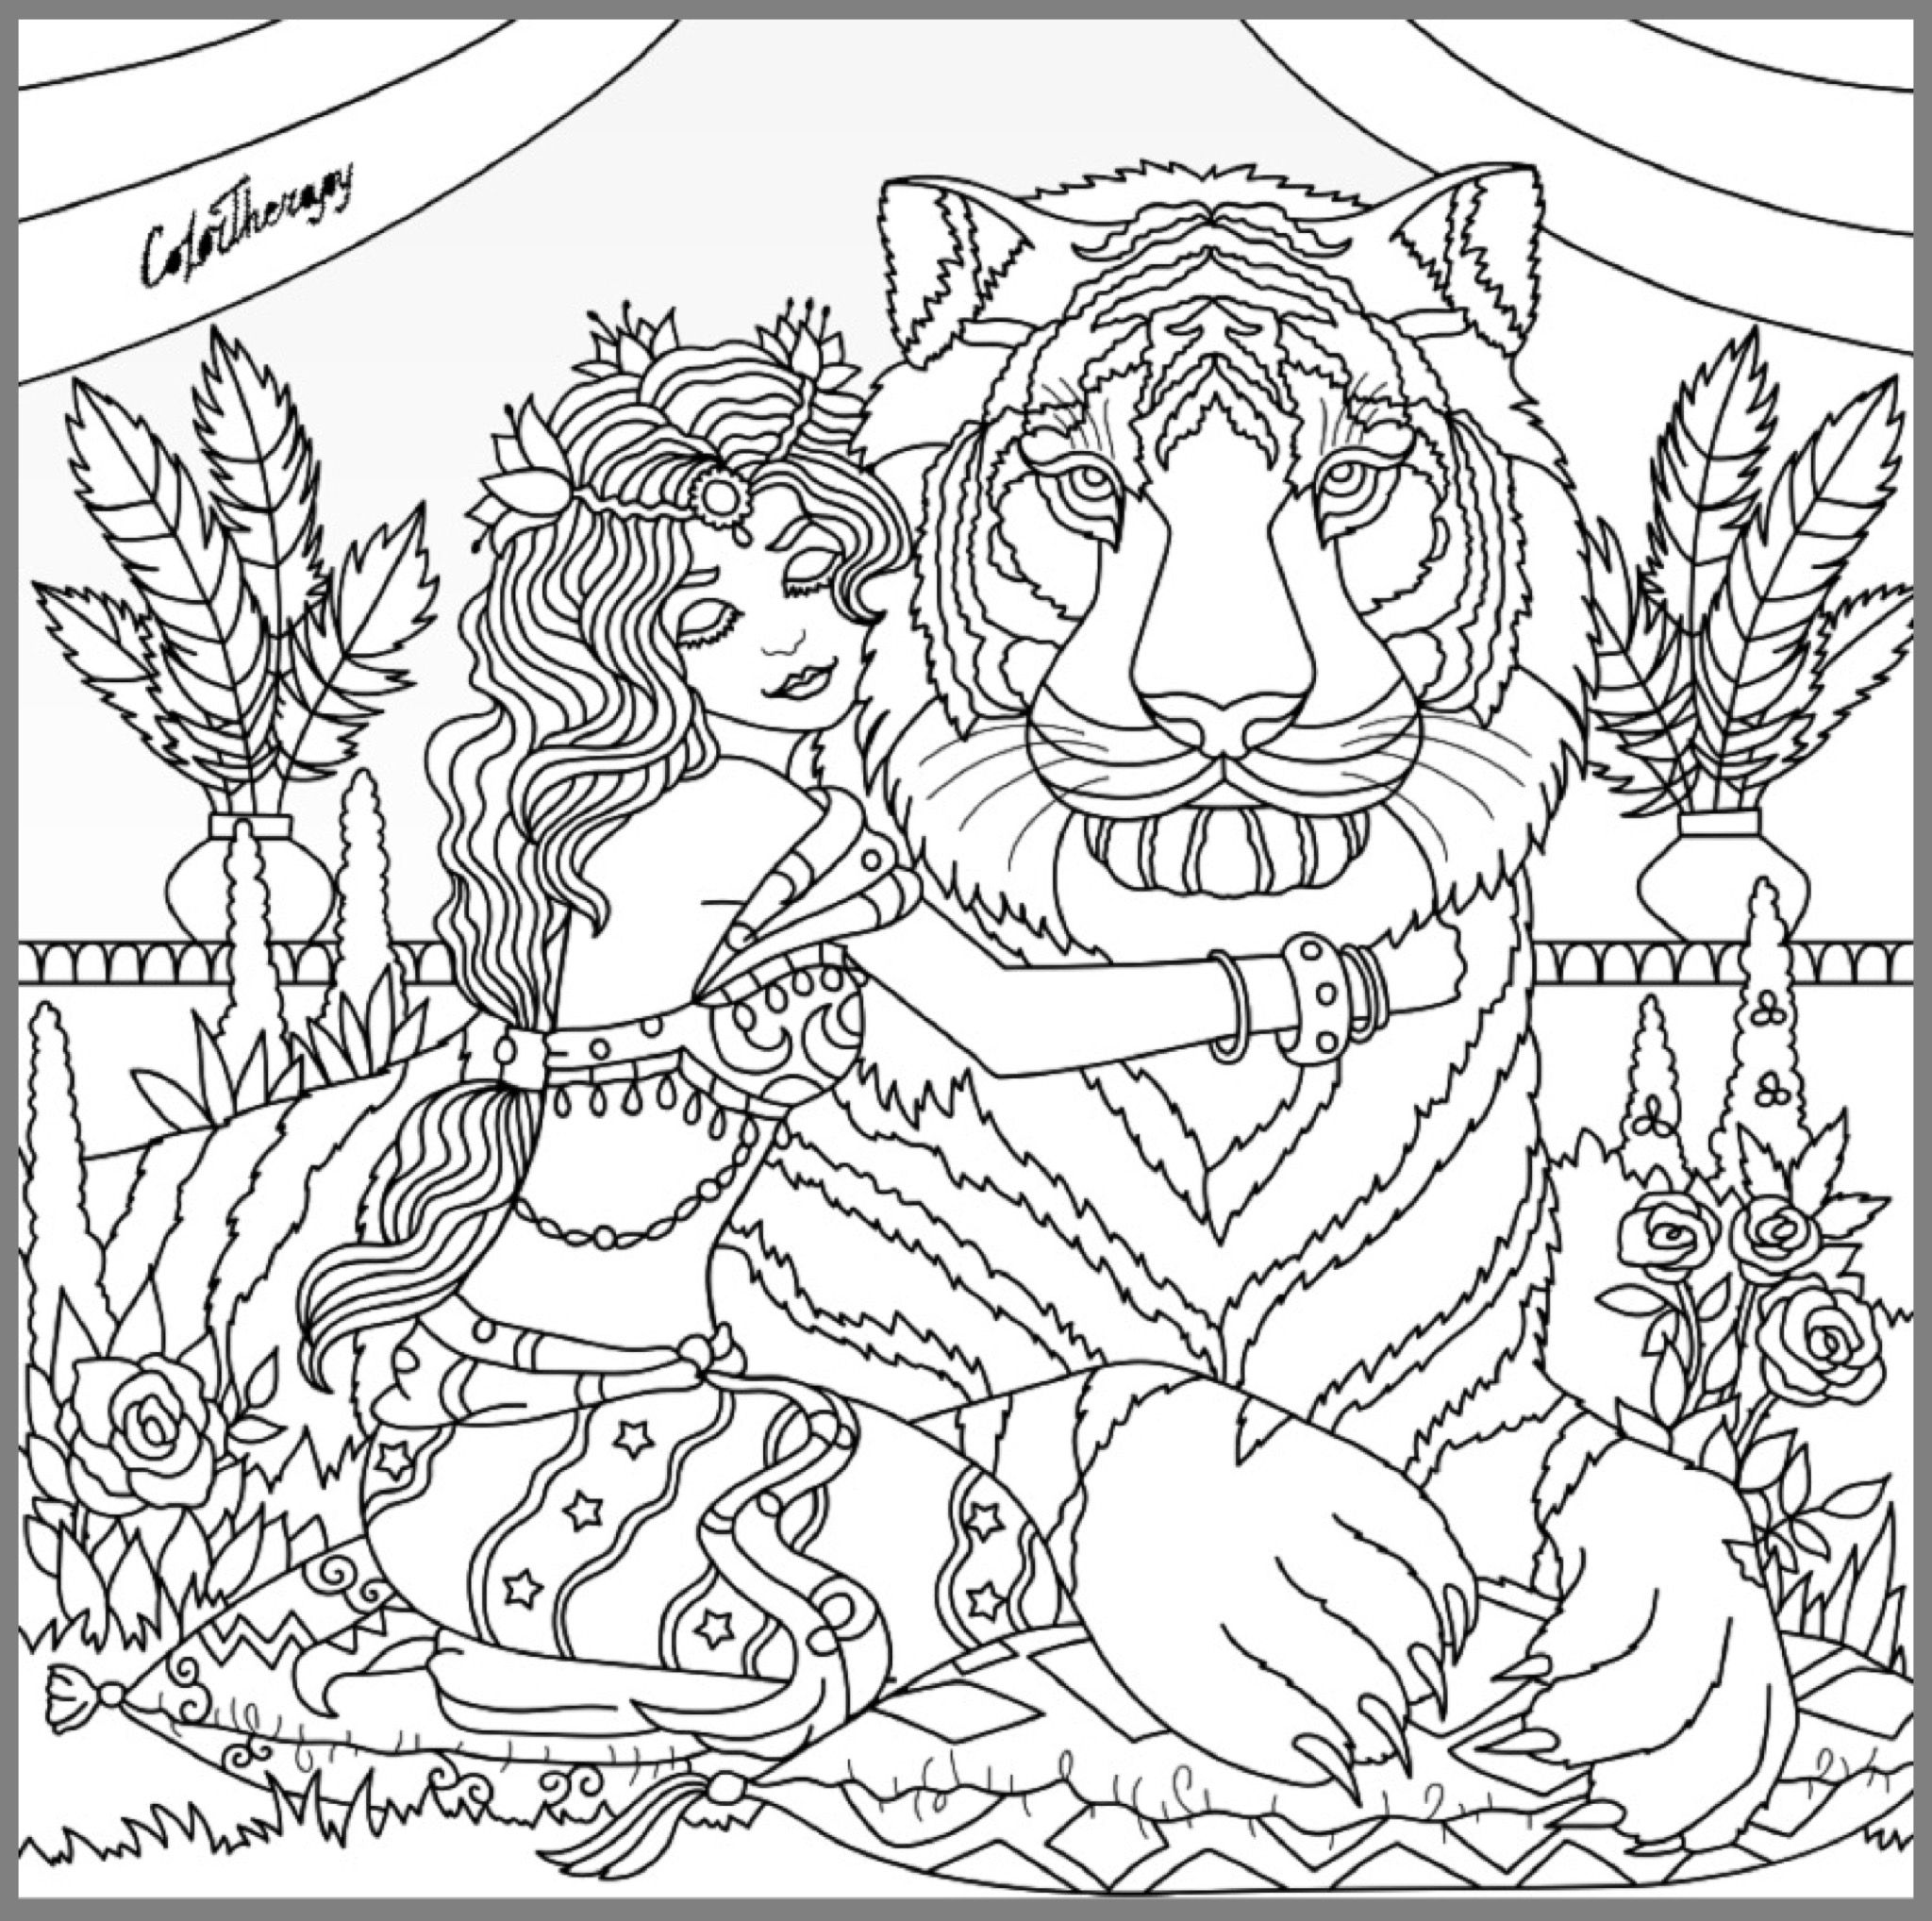 King of the Jungle coloring page